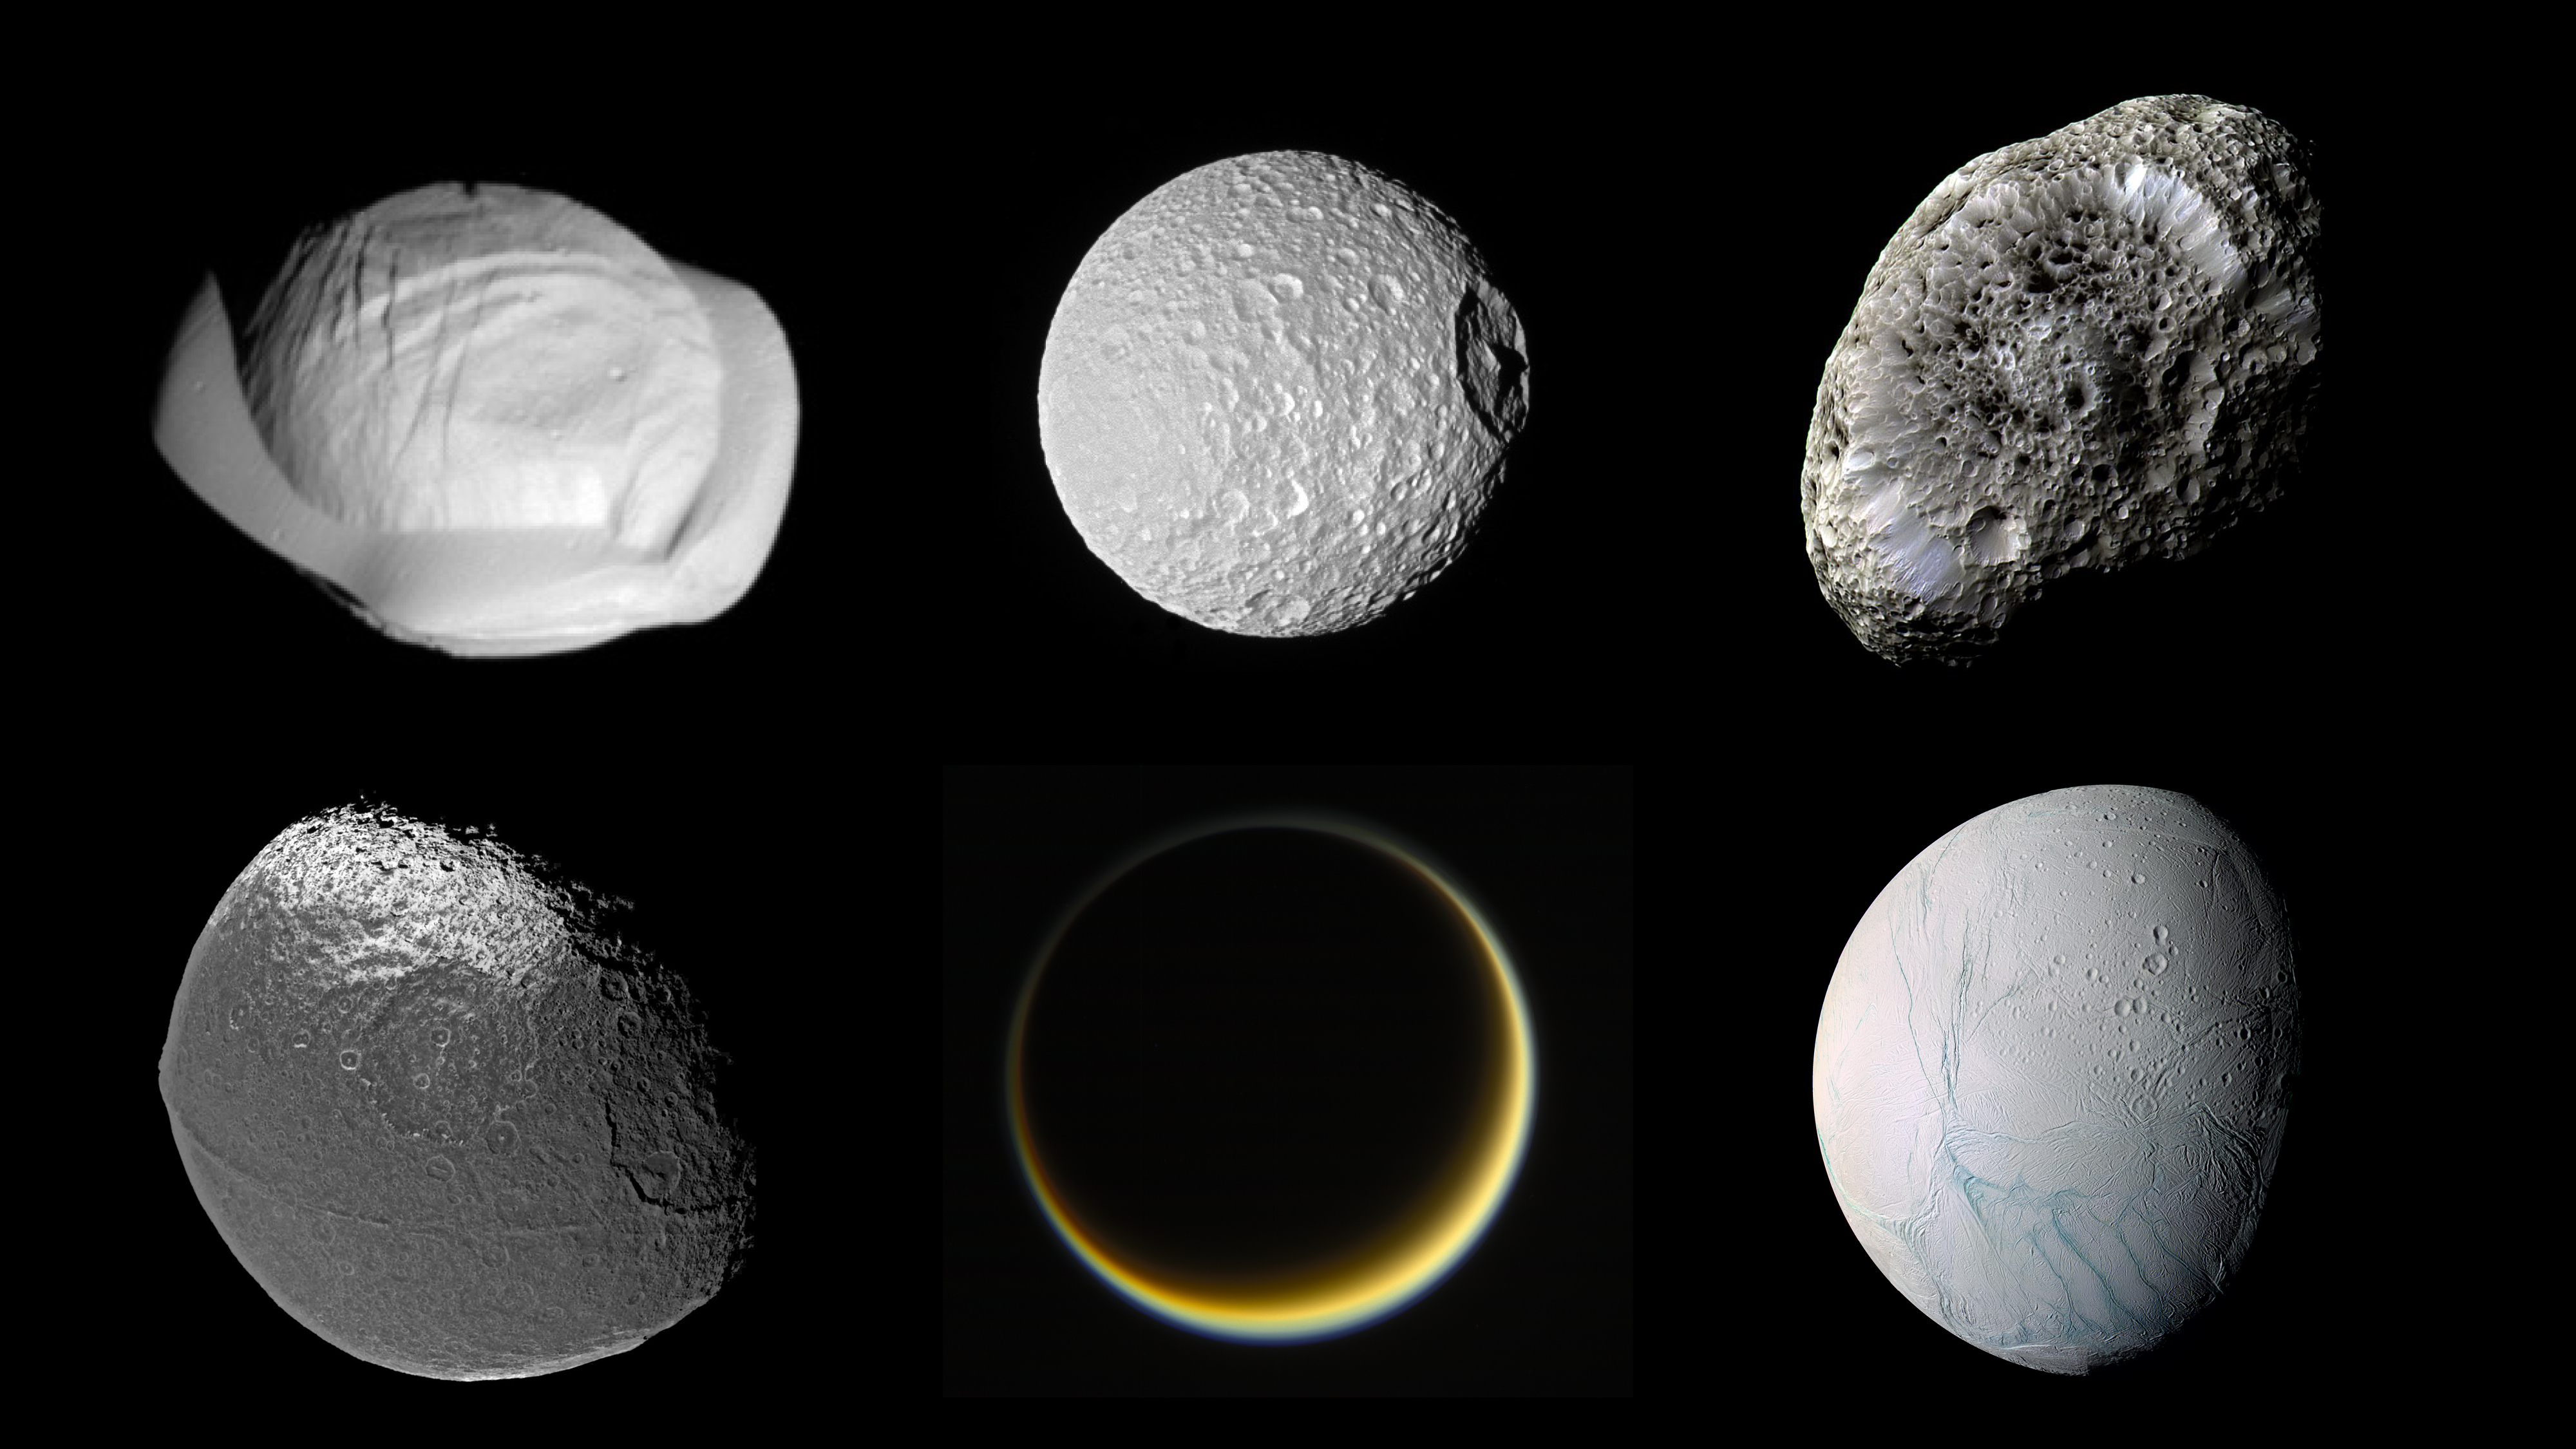 ESA Science & Technology: Saturn's moon zoo